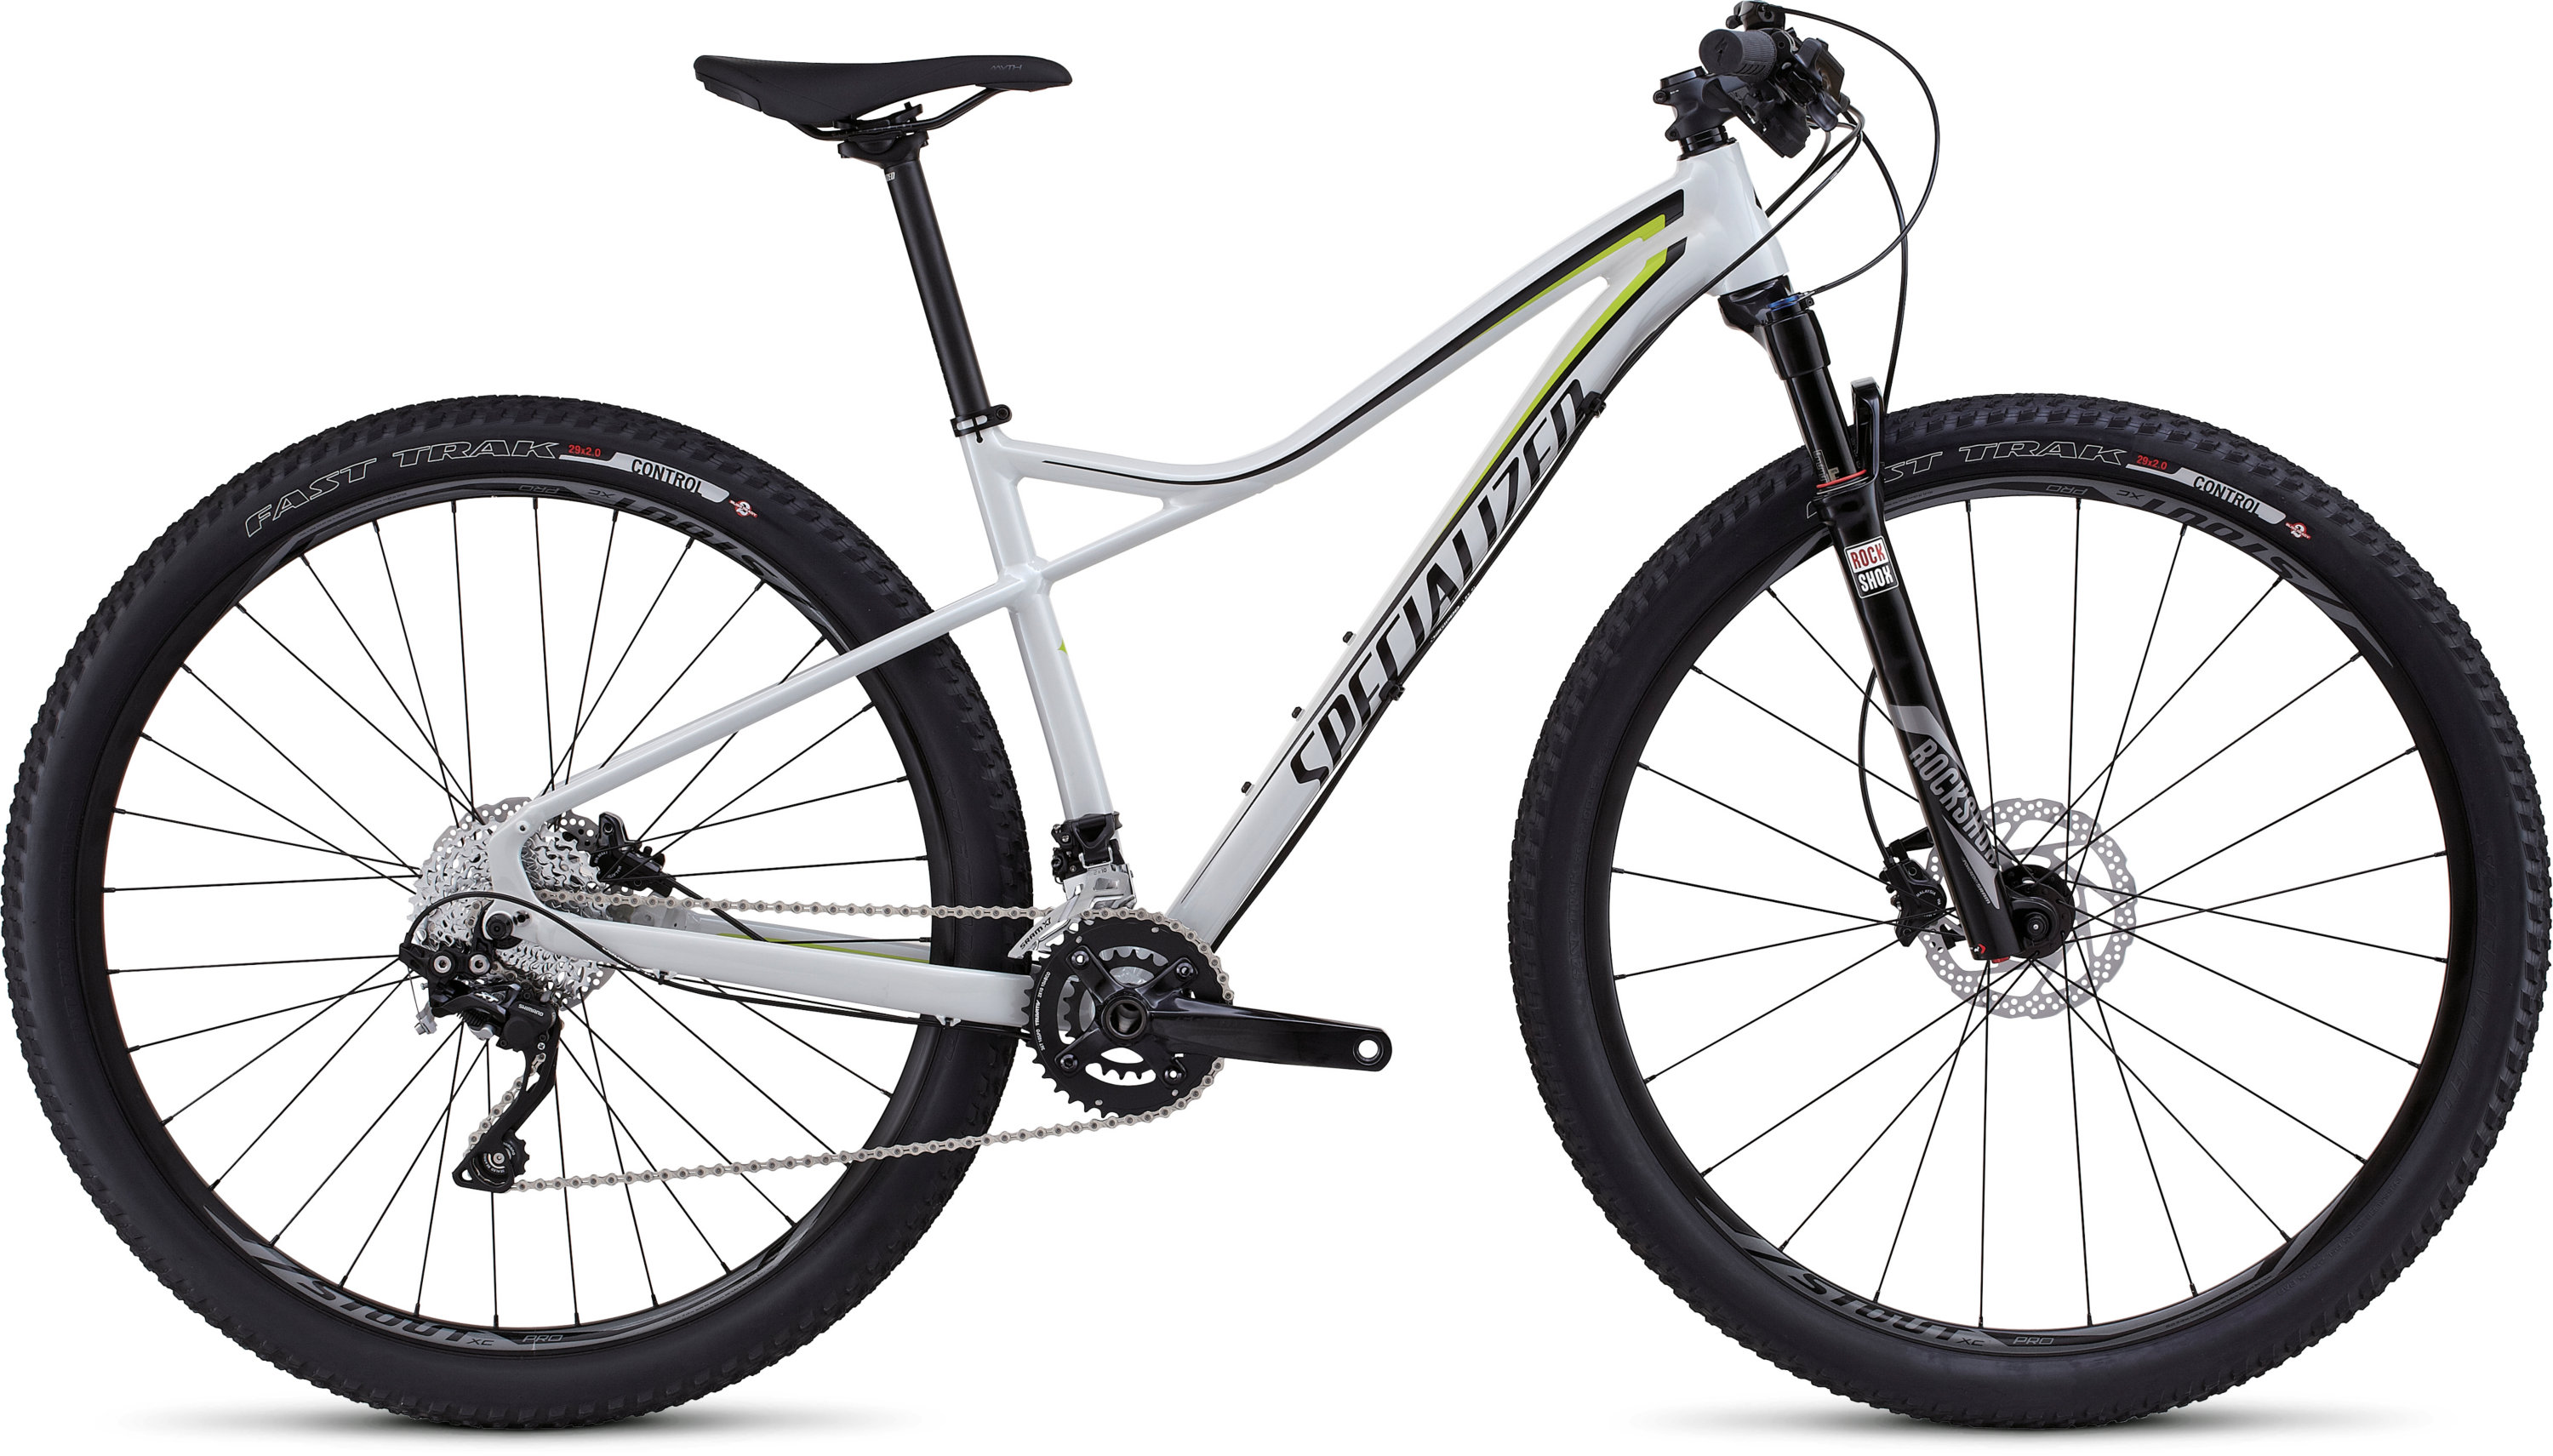 SPECIALIZED FATE ELITE 29 DRTYWHT/PRLHYP/METBLK S - Bikedreams & Dustbikes